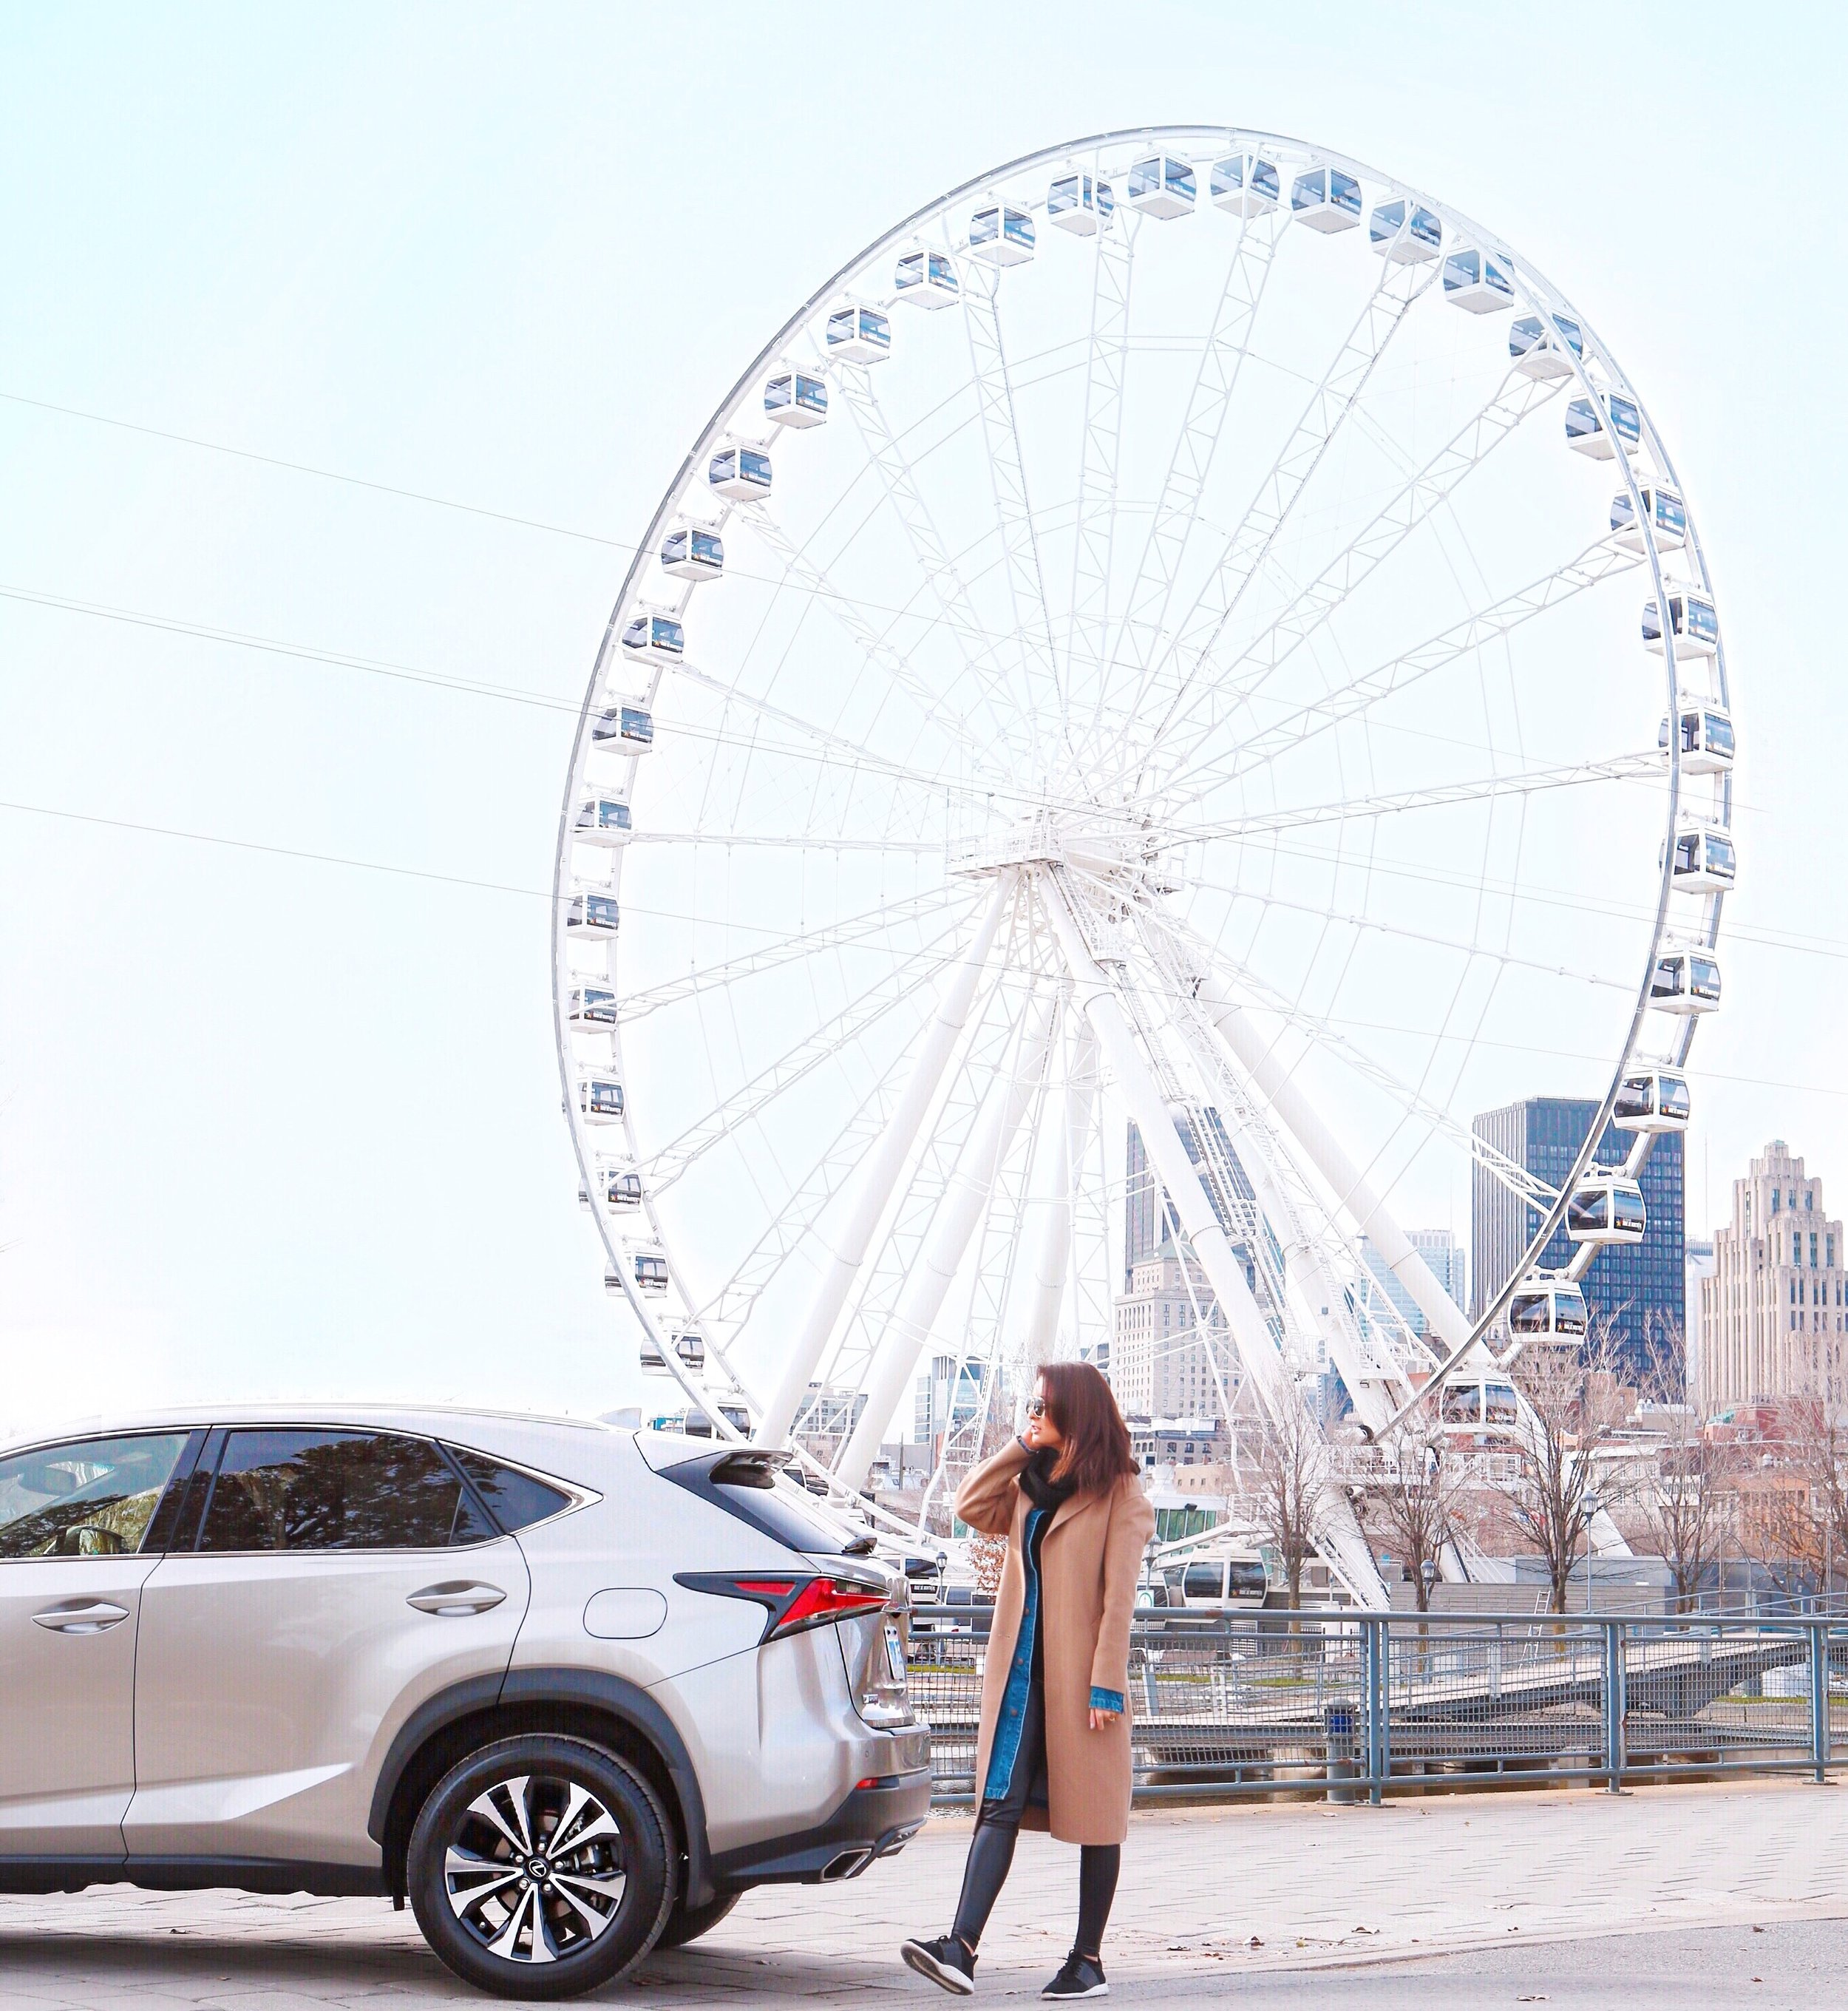 I Spent The Day With Lexus And This Is What Happened… - Discovering Montreal, the Takumi way